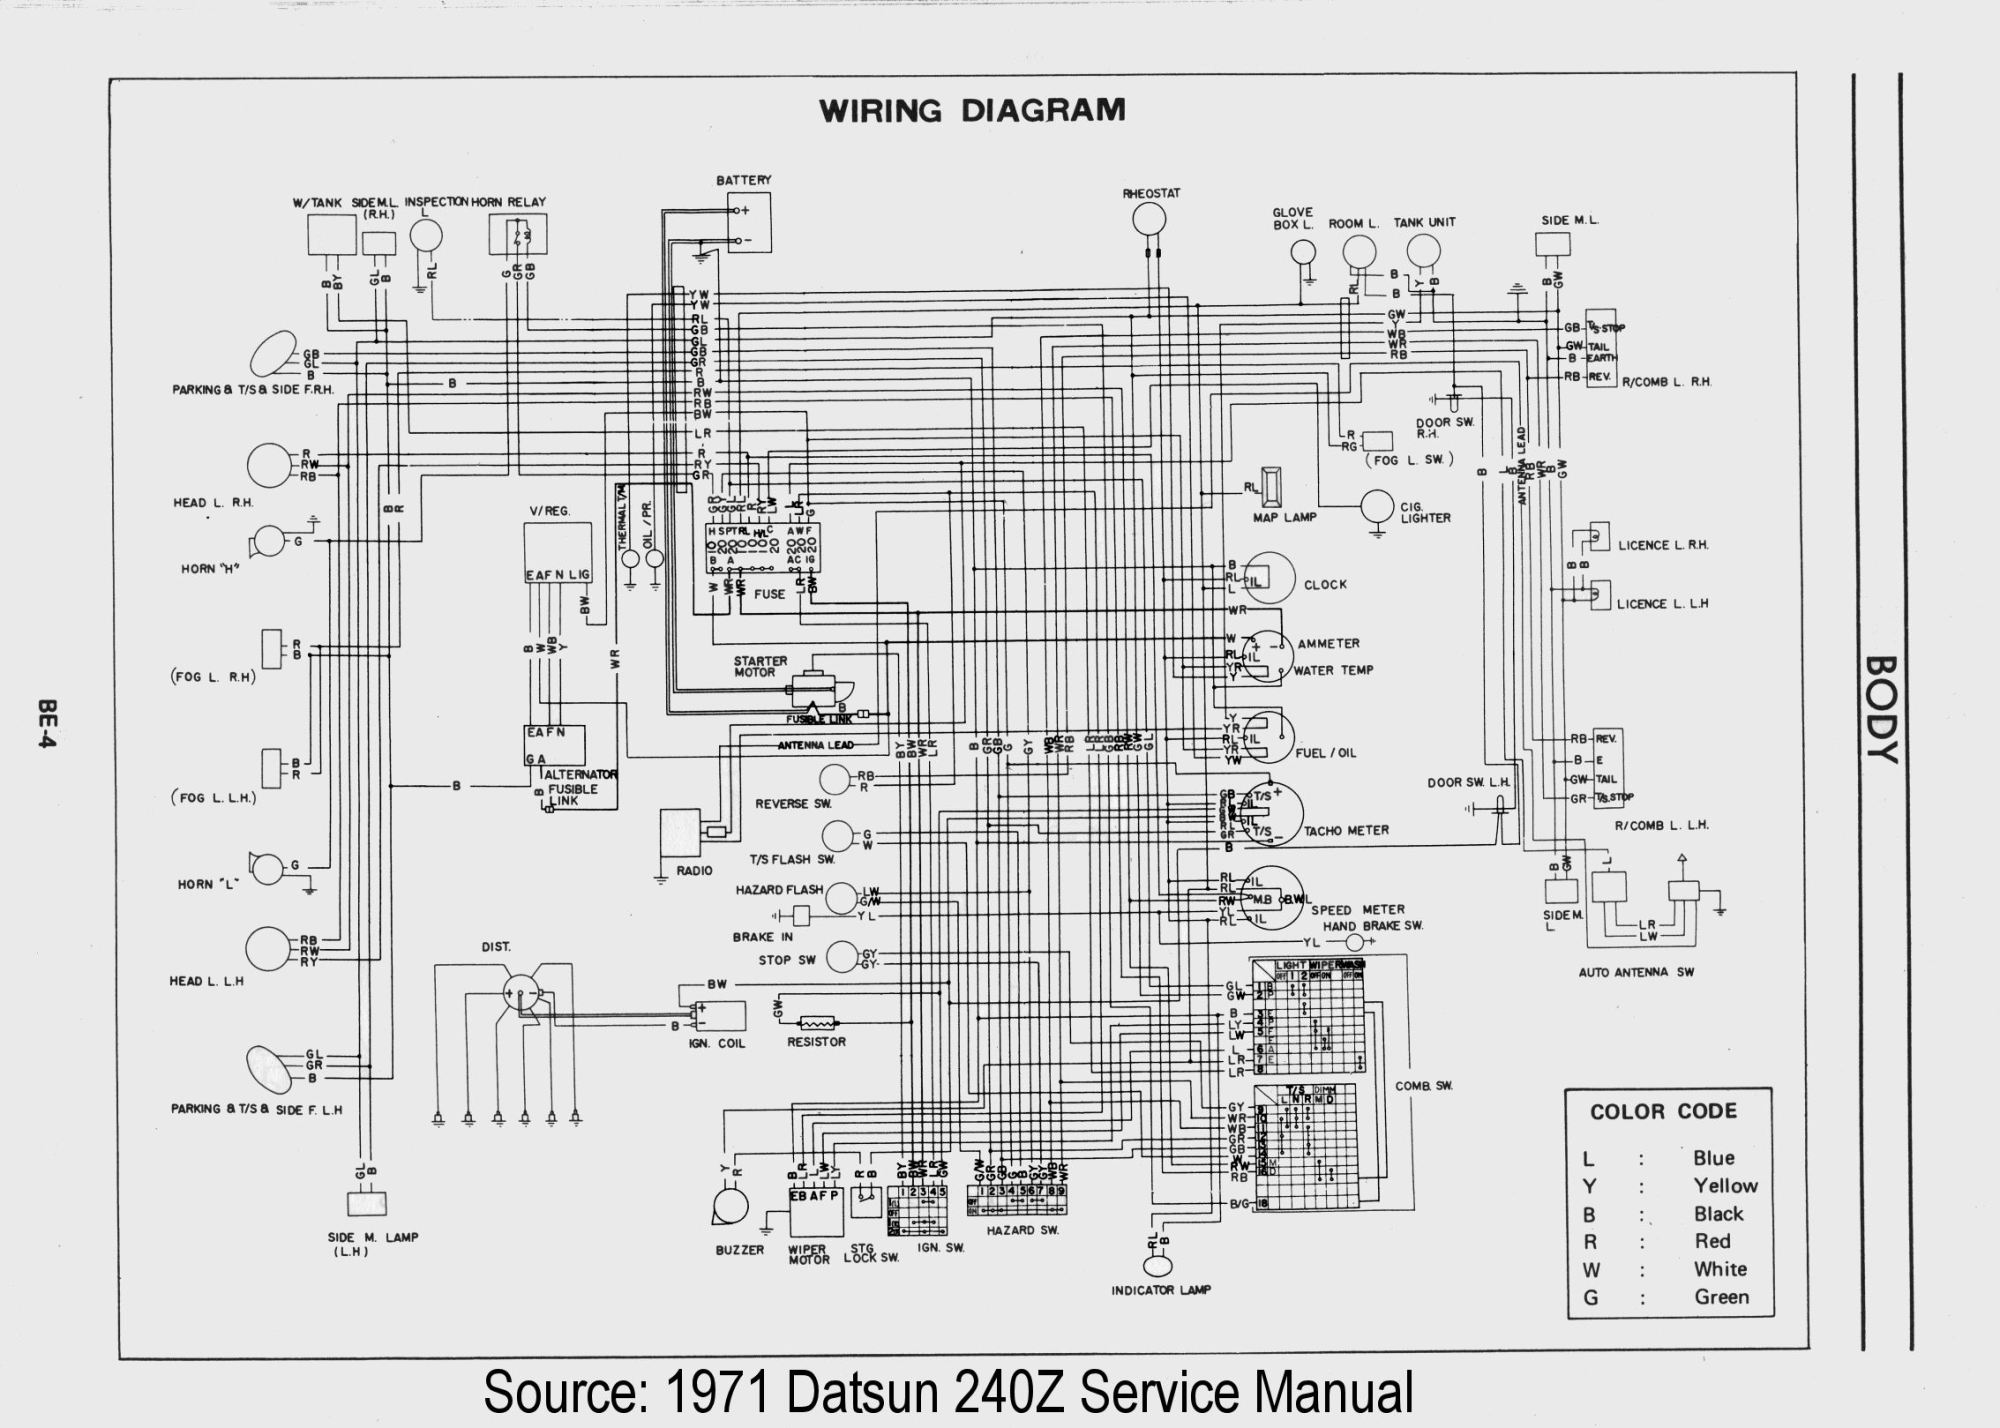 hight resolution of 1973 nissan 240z wiring diagram wiring diagram third level1971 datsun 240z wiring diagram wiring diagram third